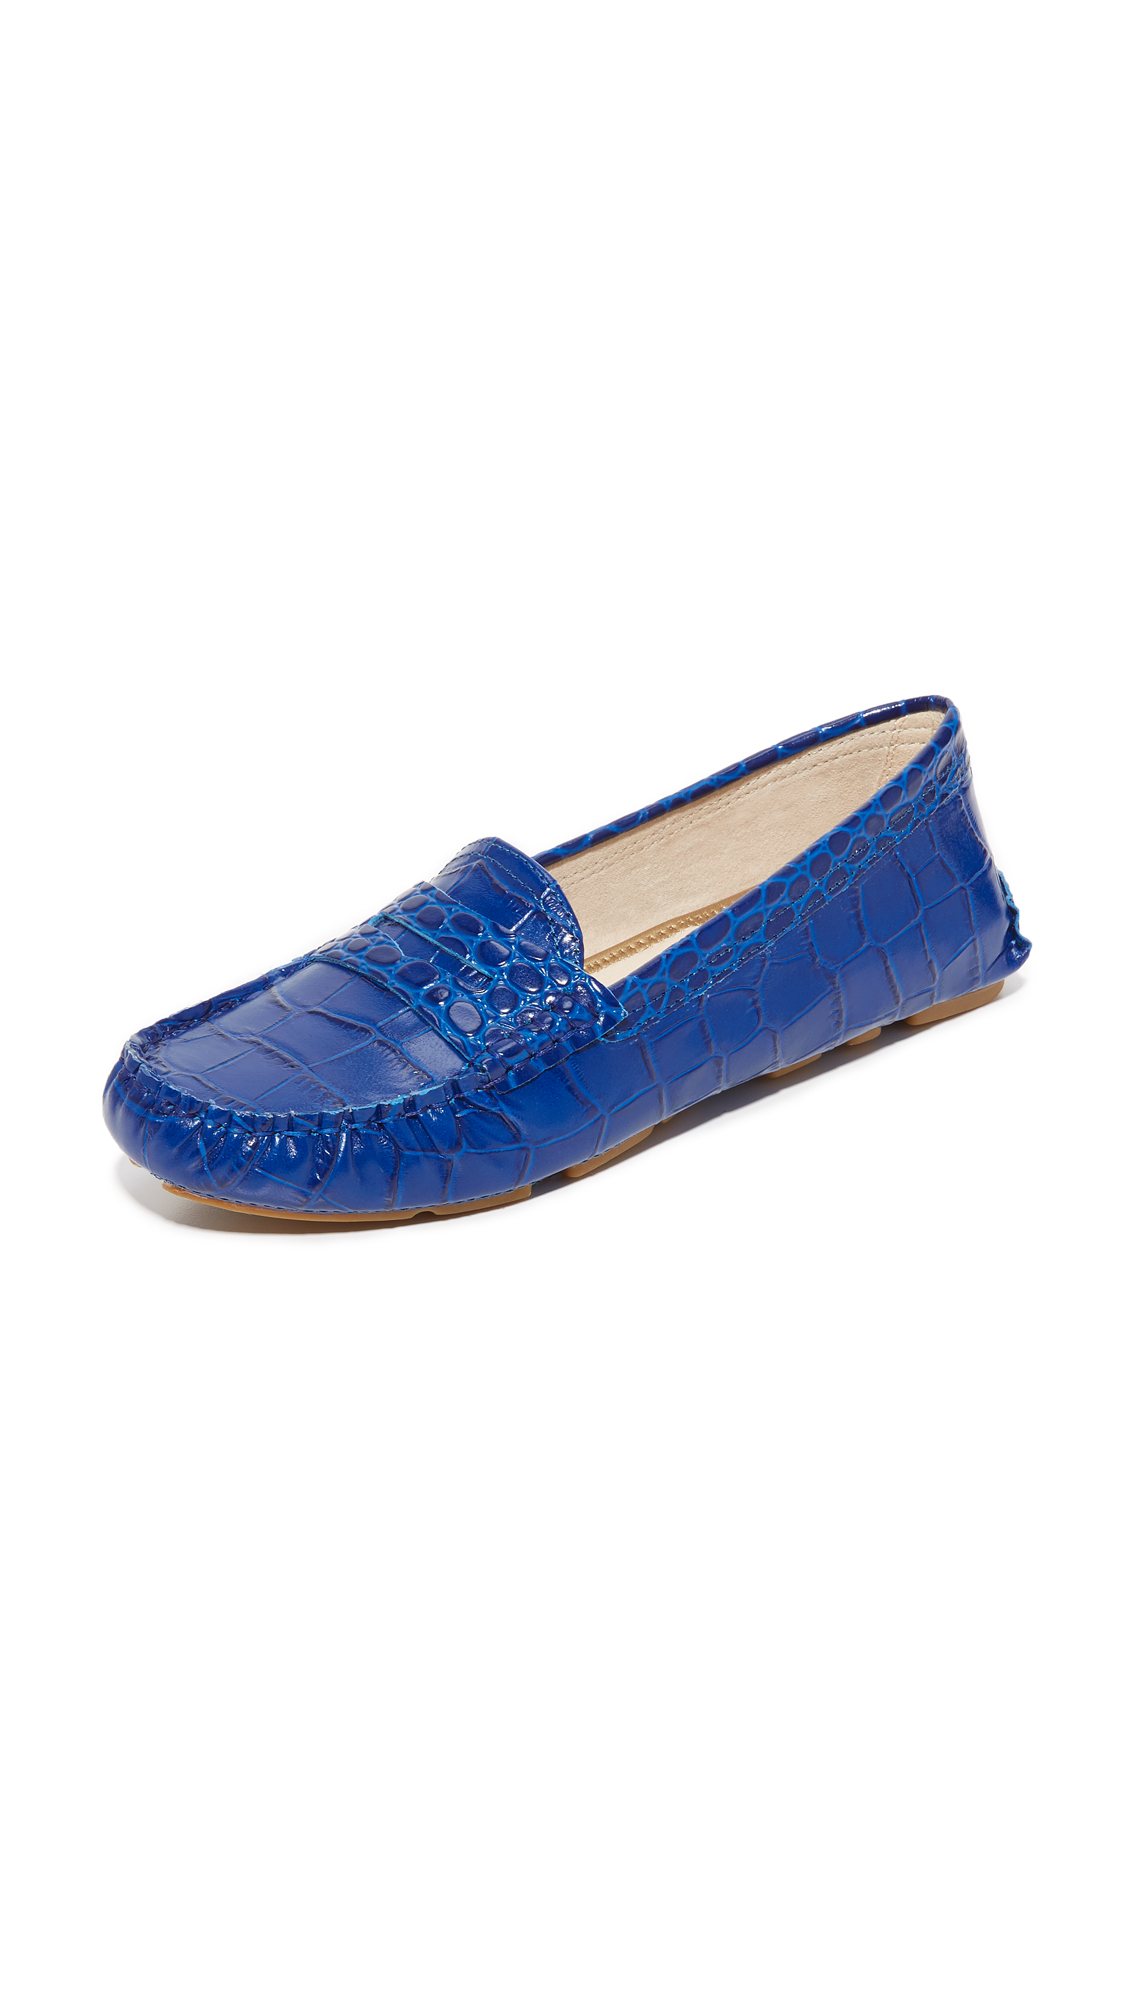 Photo of Sam Edelman Filly Driver Loafers Nautical Blue - Sam Edelman online